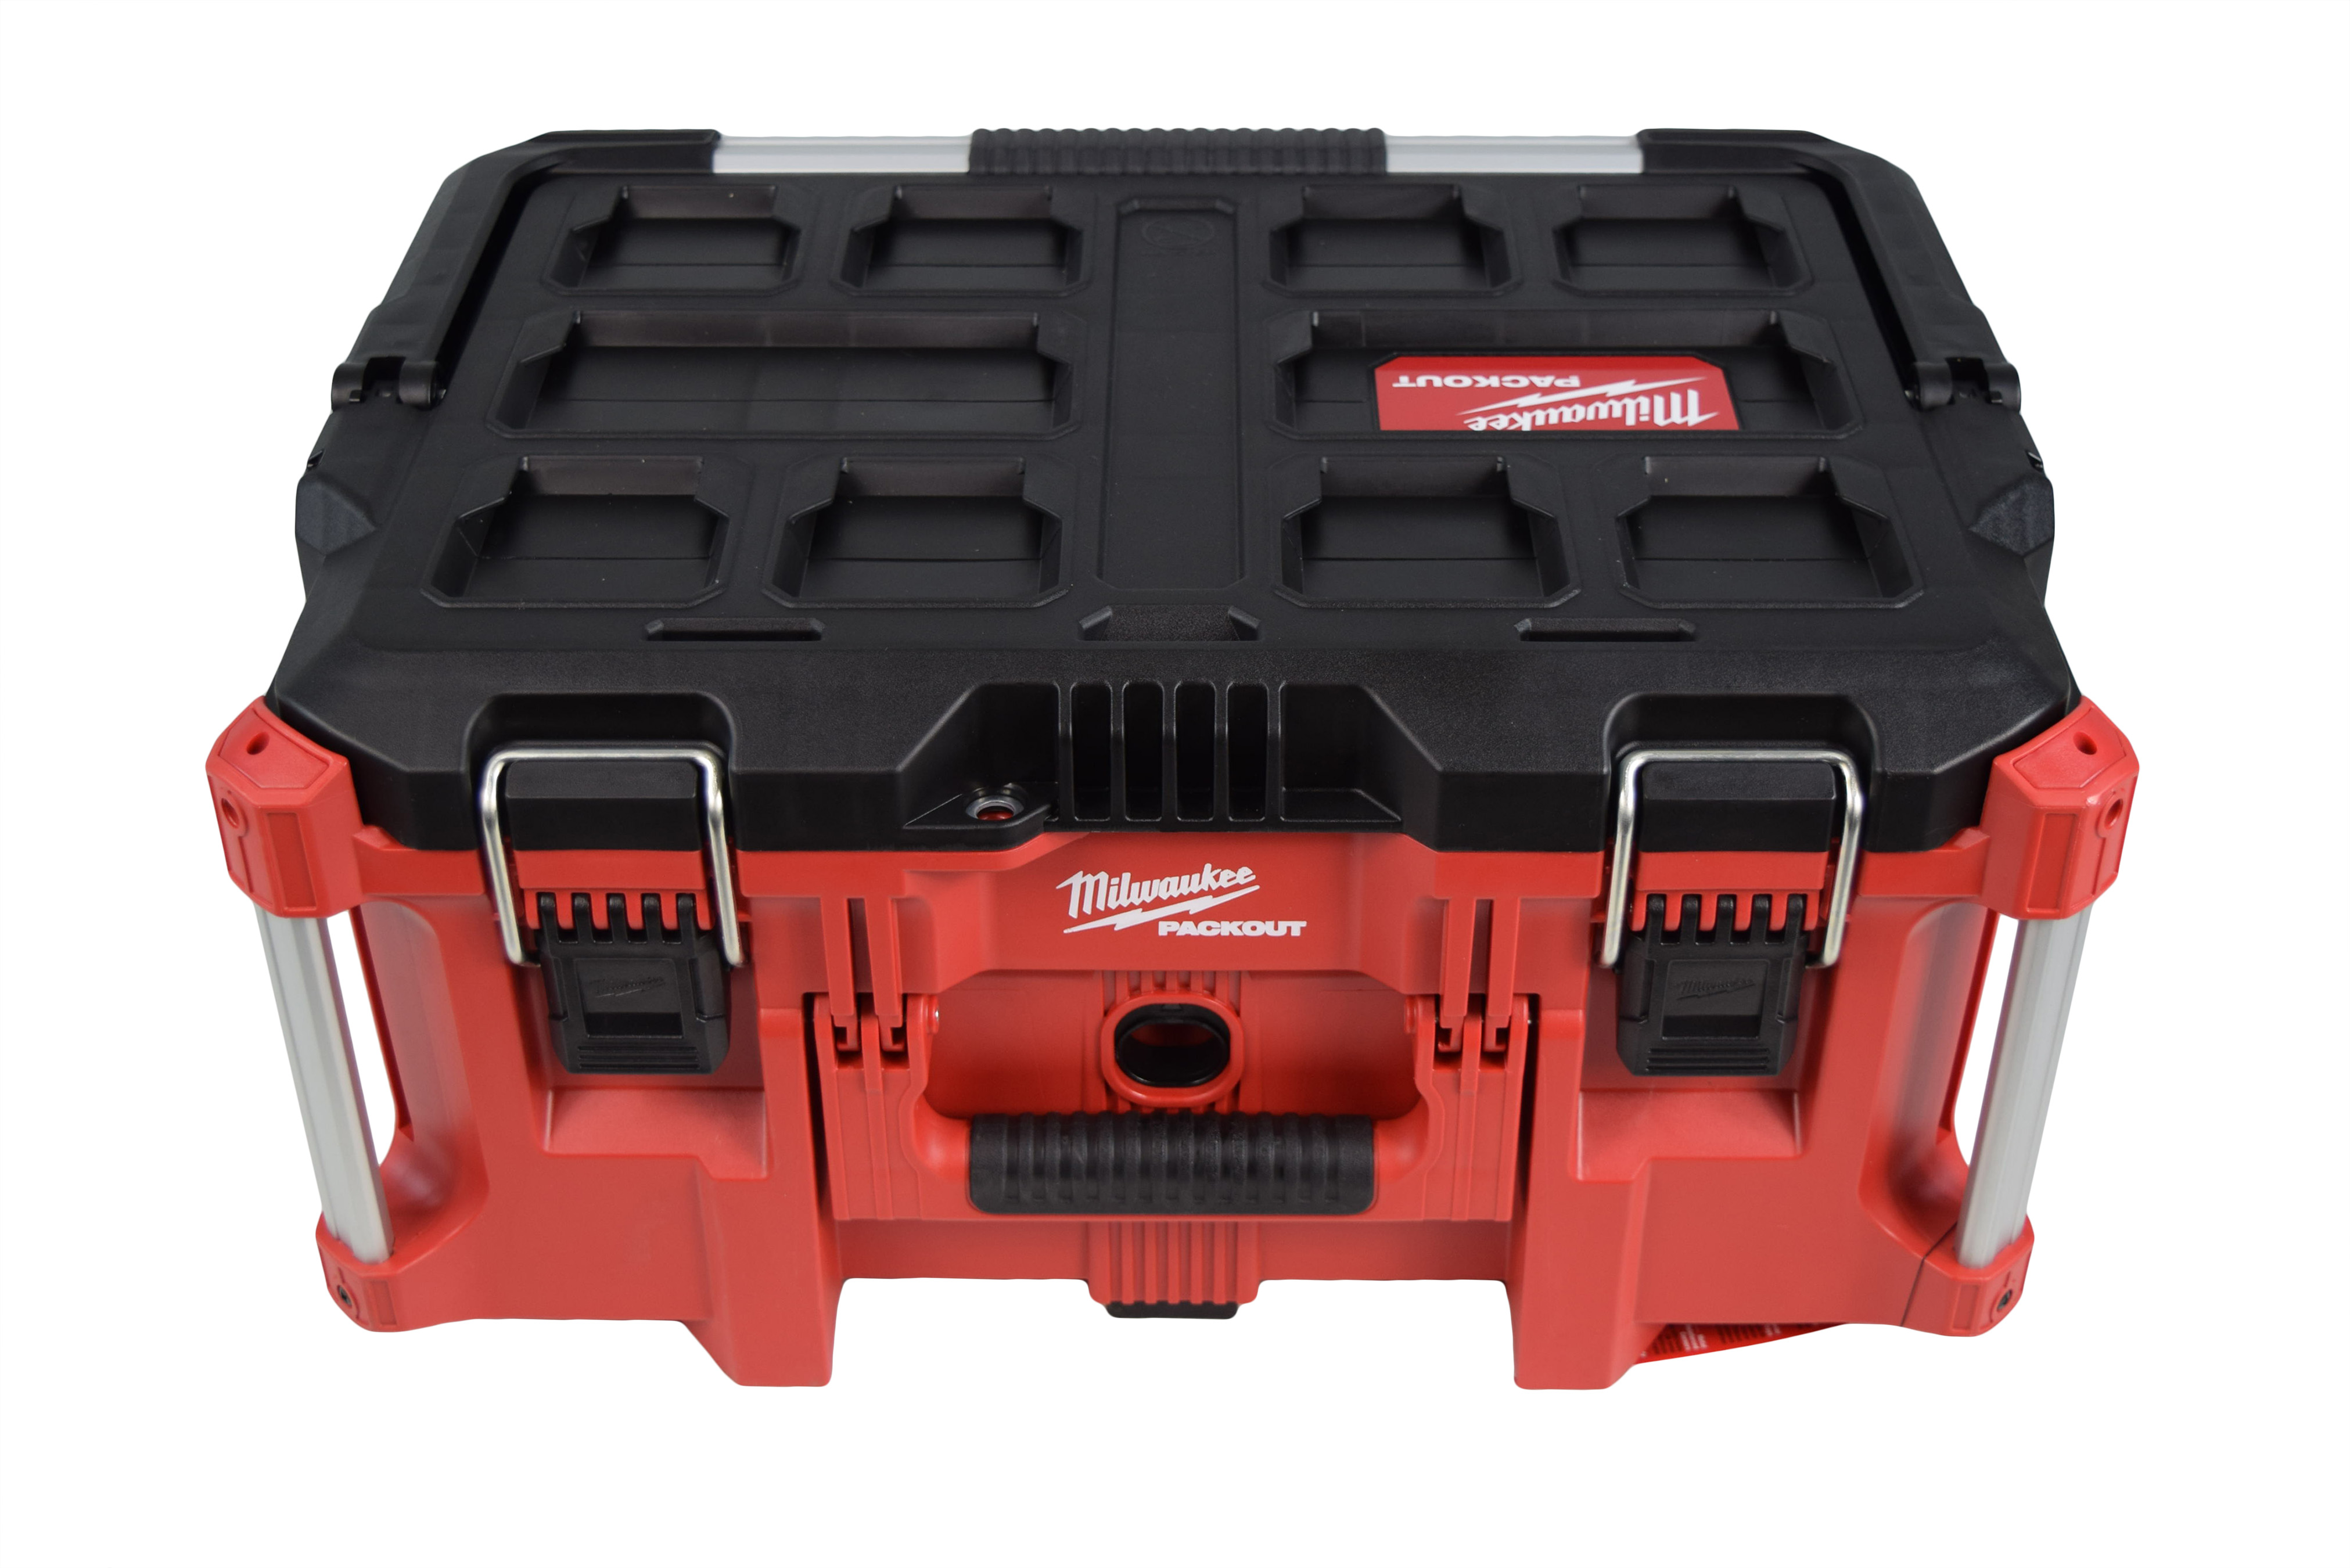 Milwaukee-48-22-8425-Packout-22-in.-Large-Tool-Box-Tool-Case-image-1